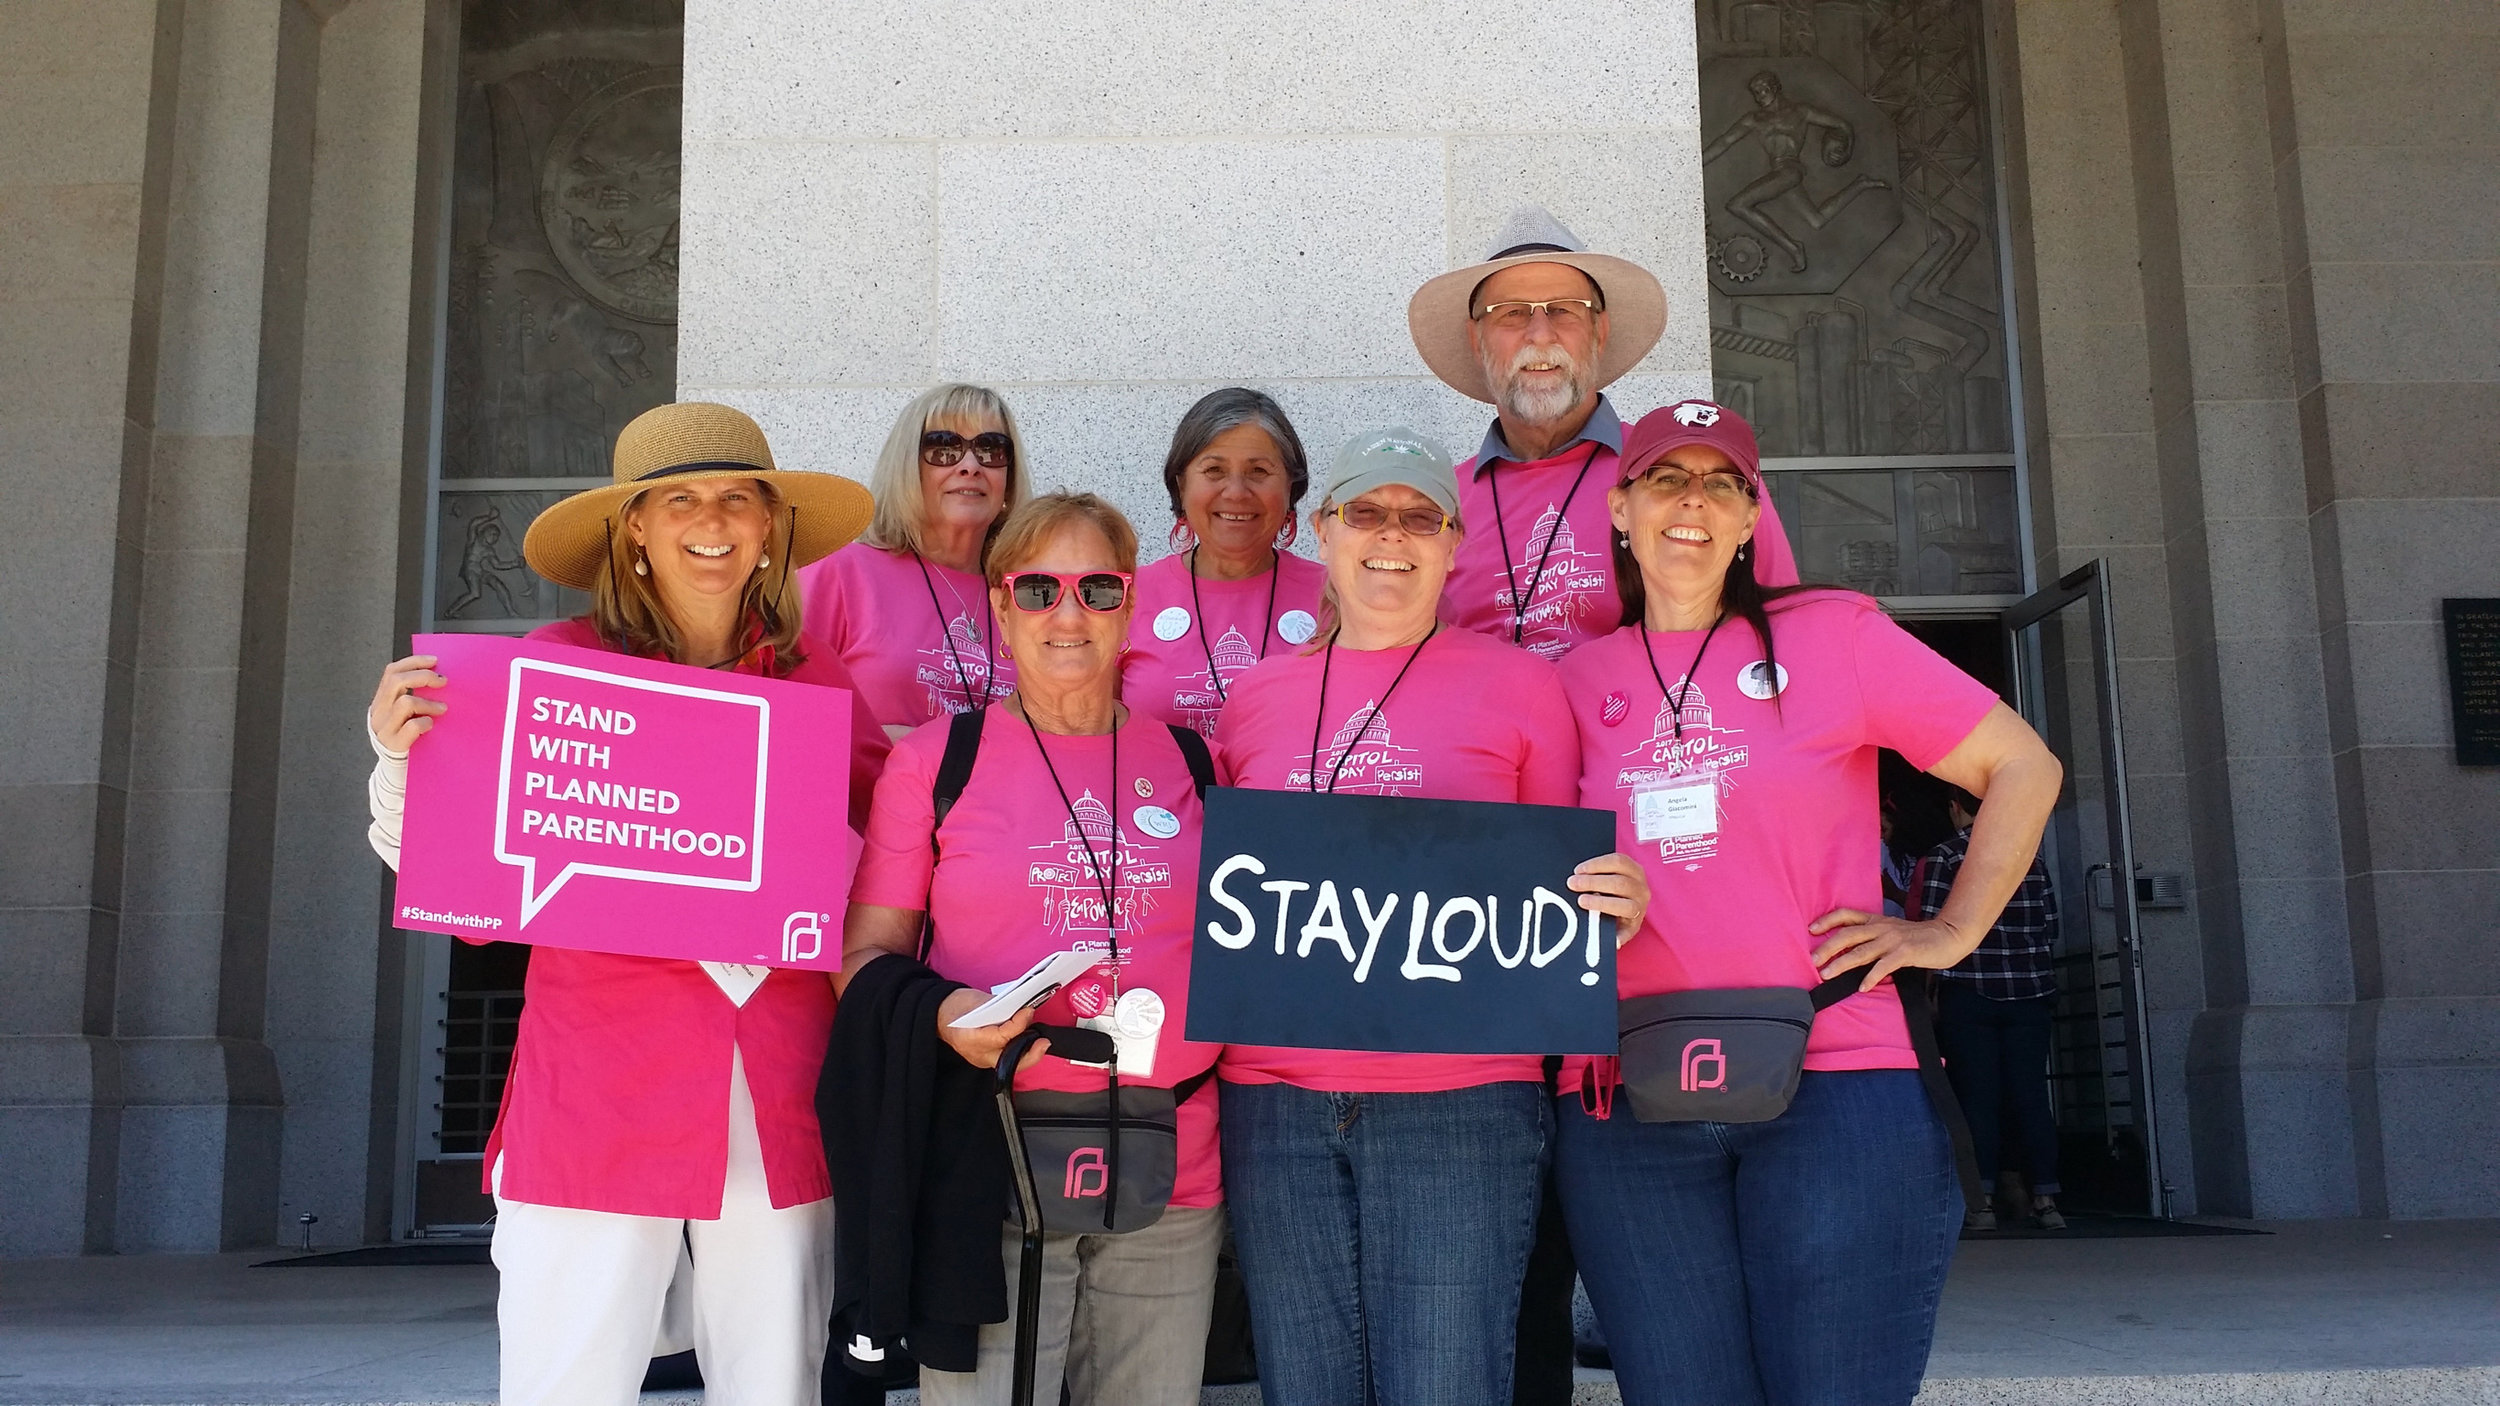 Lobbying with Planned Parenthood in Sacramento